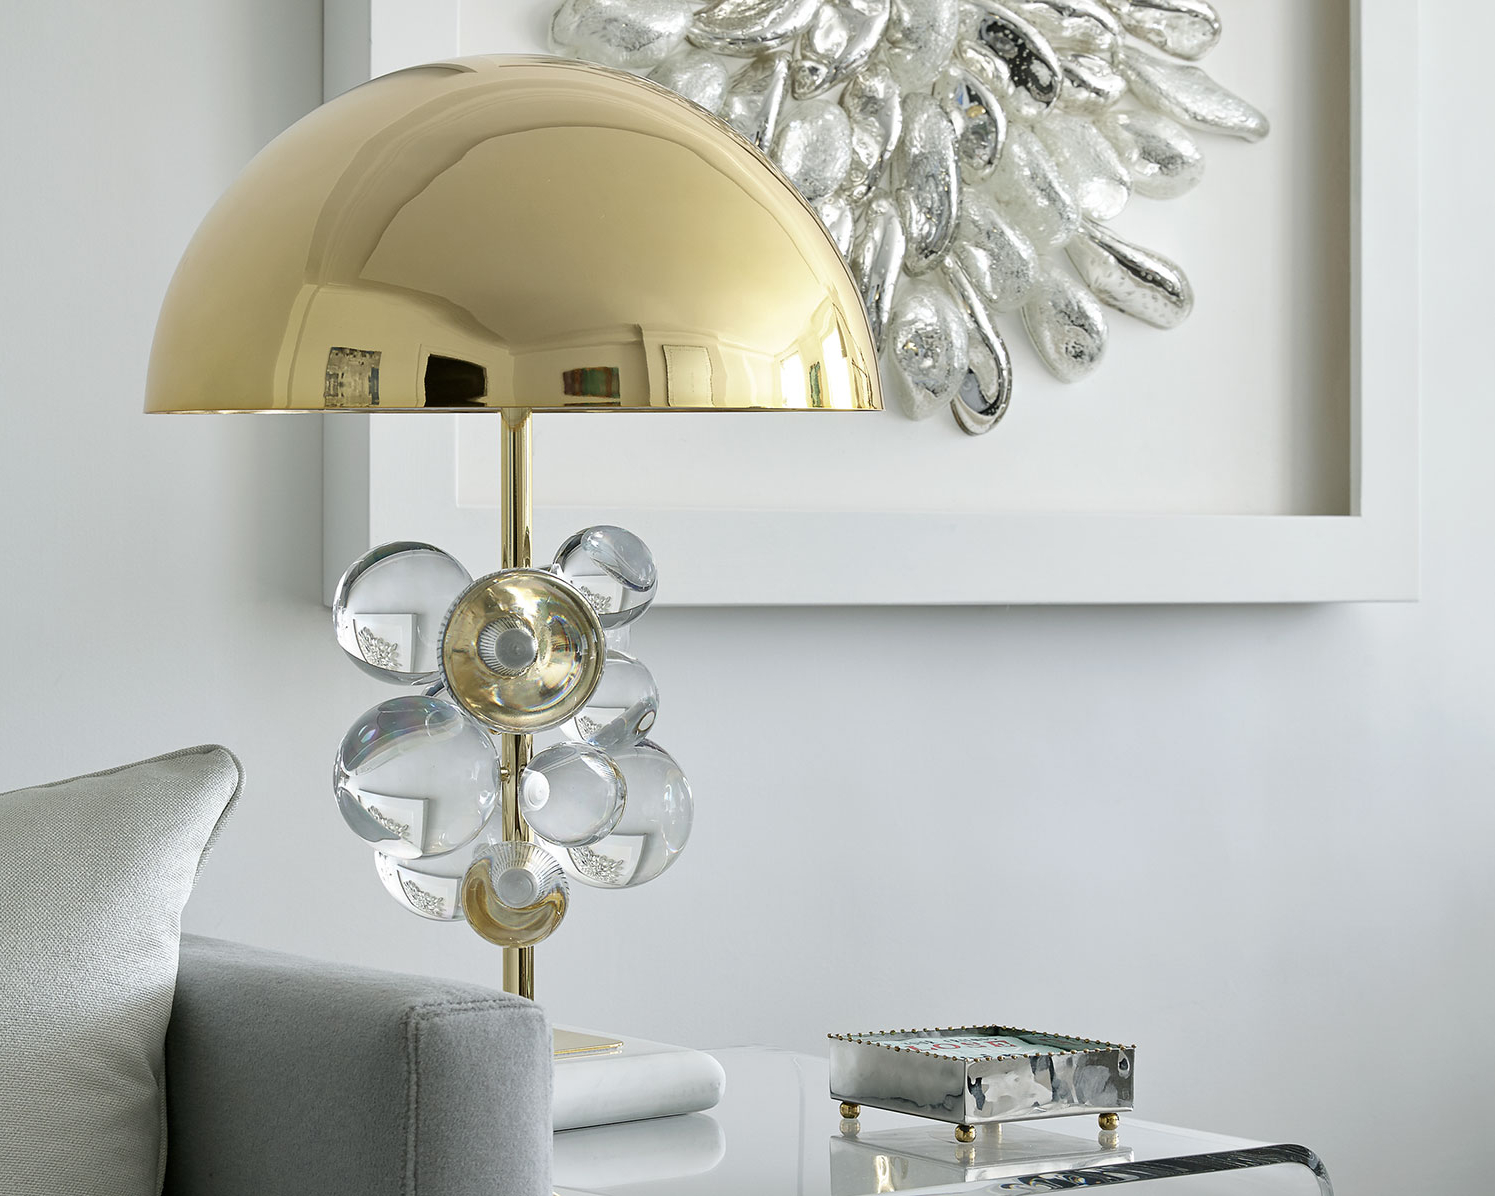 Living room interior design with fun, funky accessories, lighting and accent furnishings in a NYC apartment